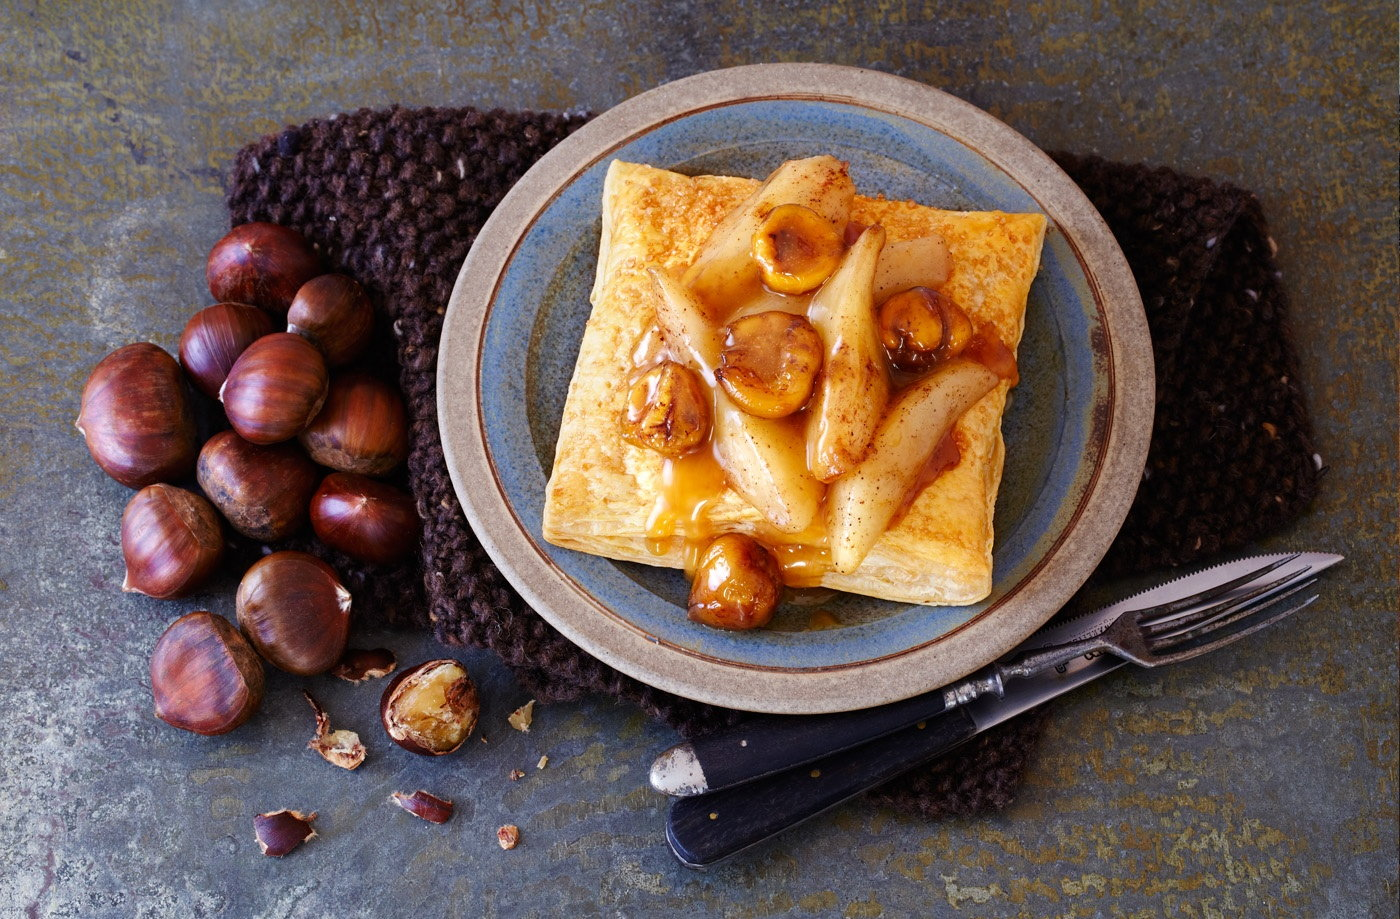 Pear and chestnut squares with caramel sauce